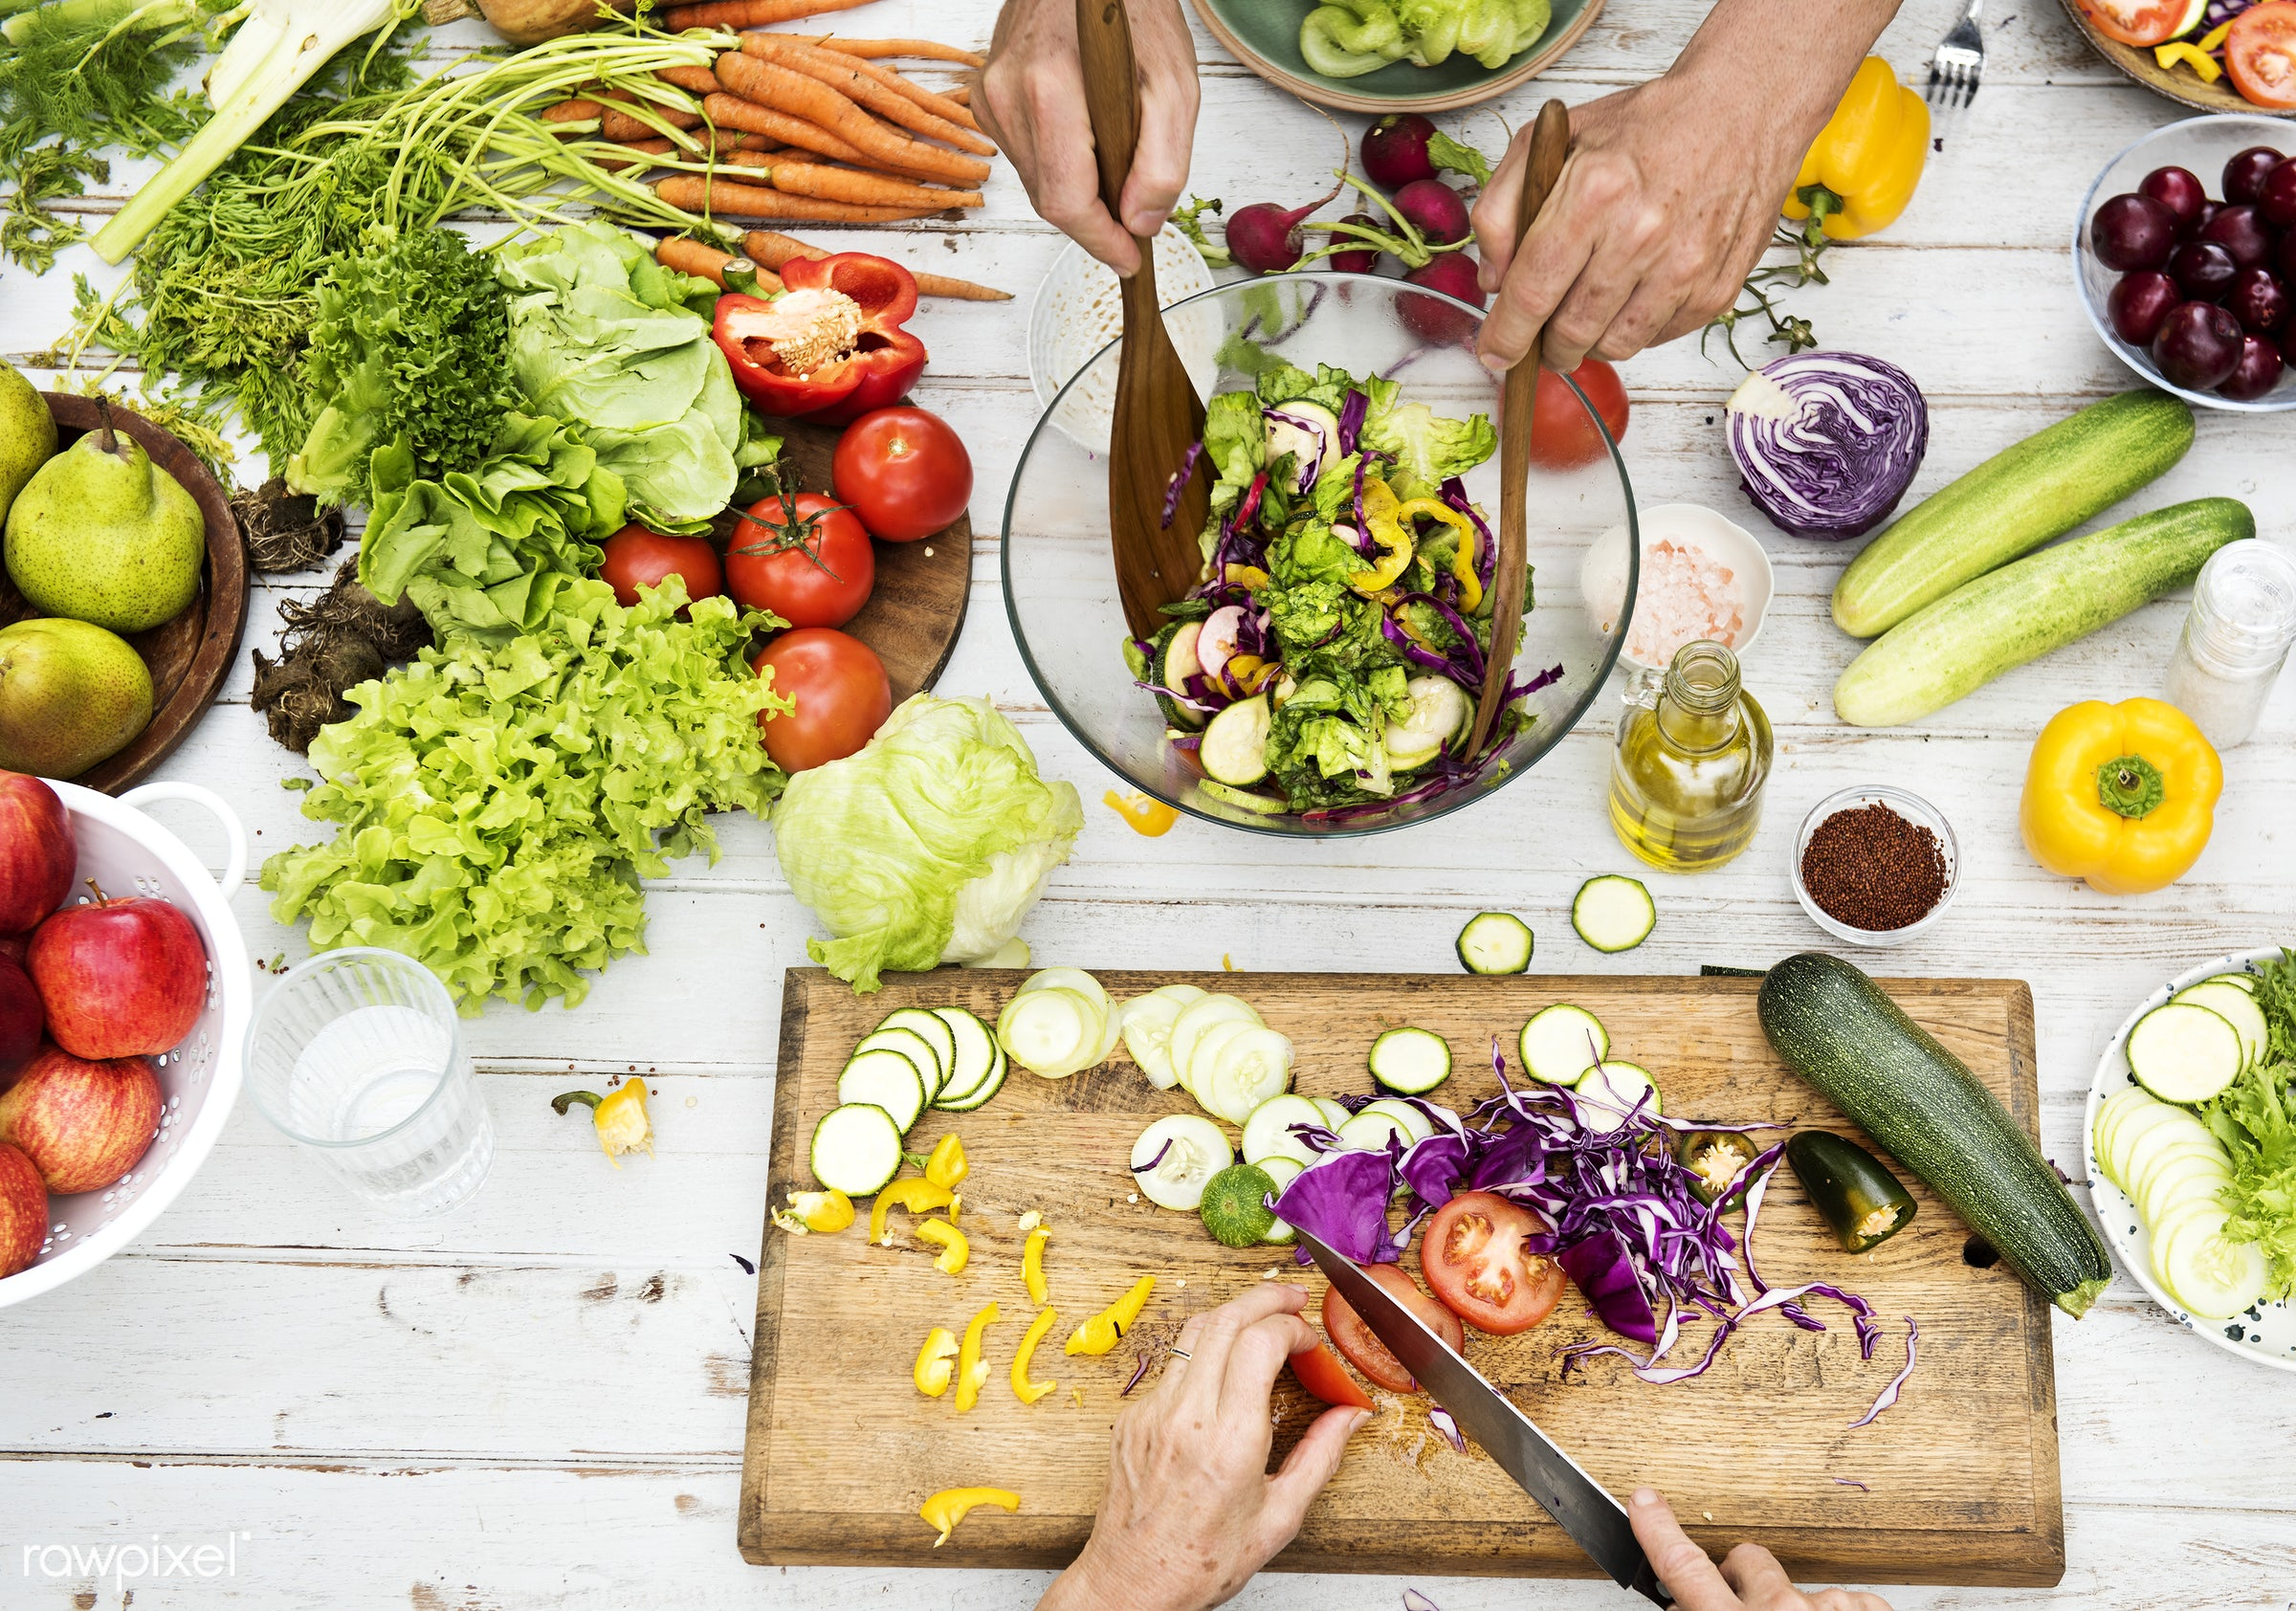 diverse, real, hands, fresh, cooking, various, closeup, meal, superfood, cut board, chopping, aerial, prepare, cutting,...